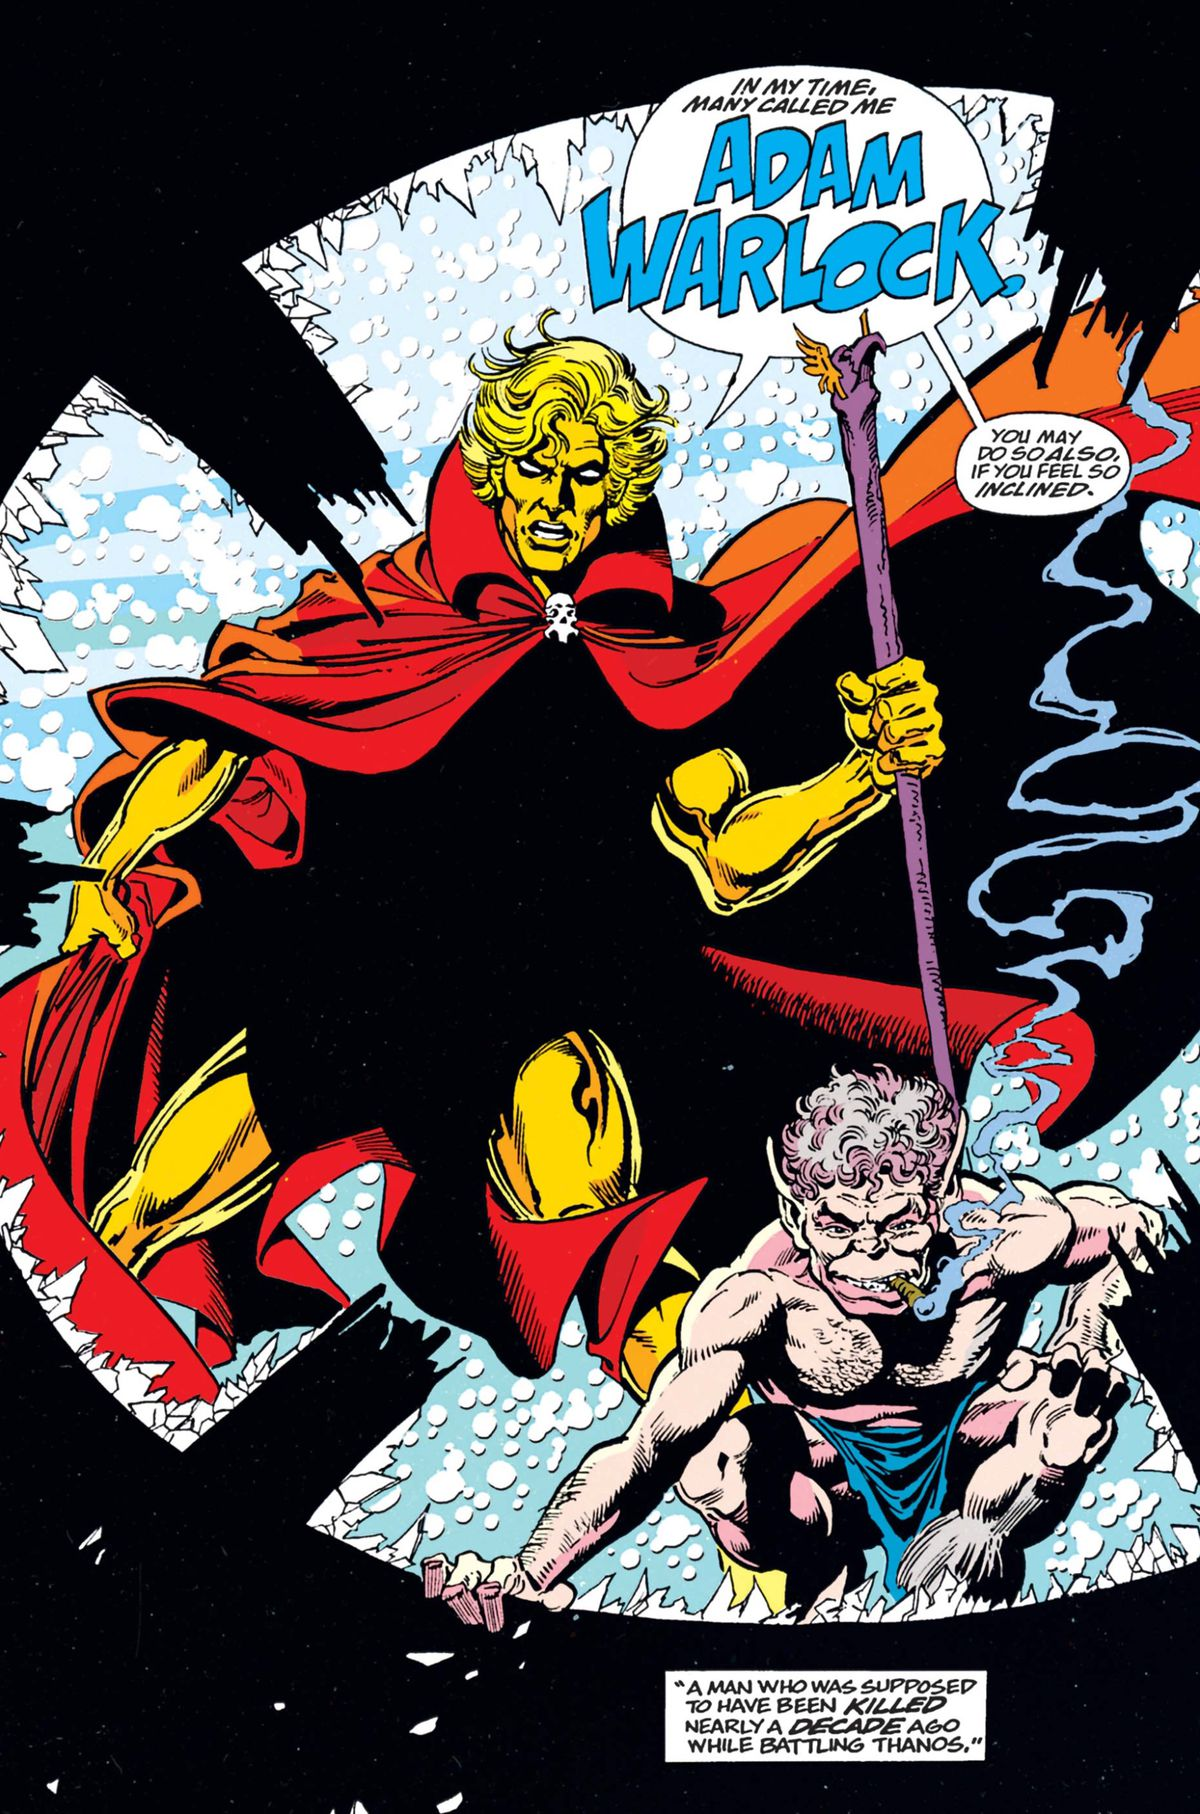 Adam Warlock and Pip the Troll in Infinity Gauntlet # 2, Marvel Comics (1991).